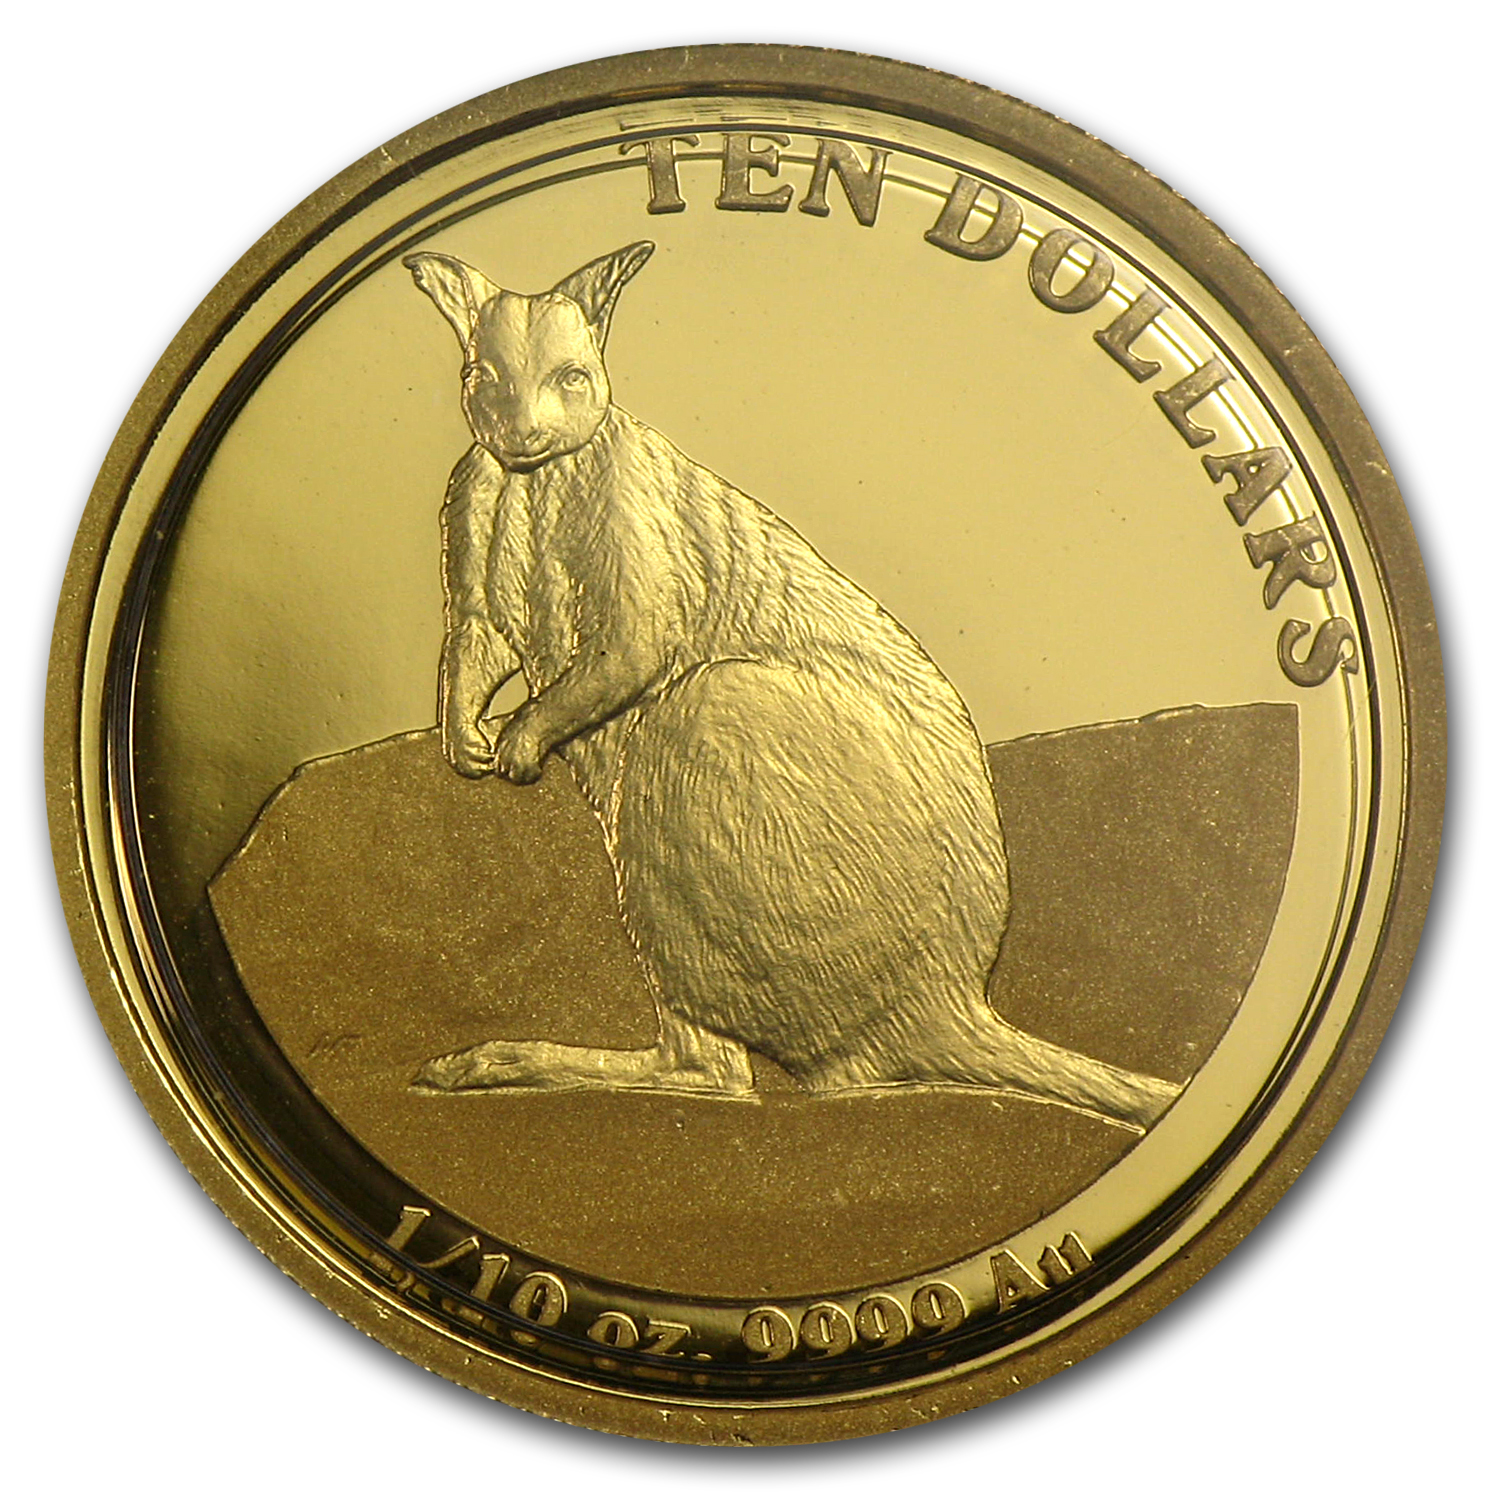 2012 Australia 1/10 oz Proof Gold Kangaroo